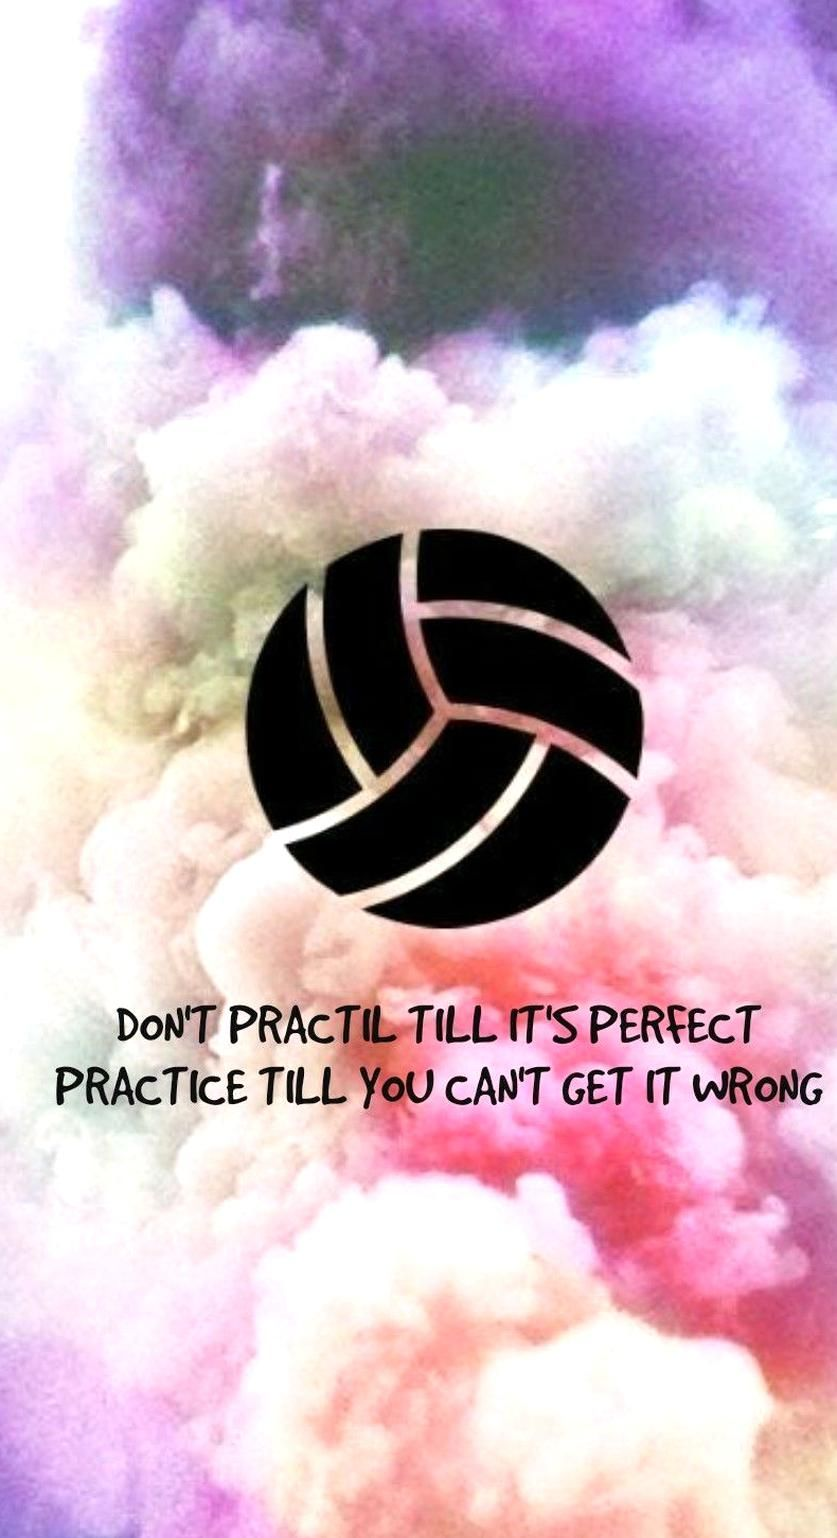 73 Wallpaper Motivation Wallpaper Volleyball Quotes Volleyball Backgrounds Volleyball Volleyball Quotes